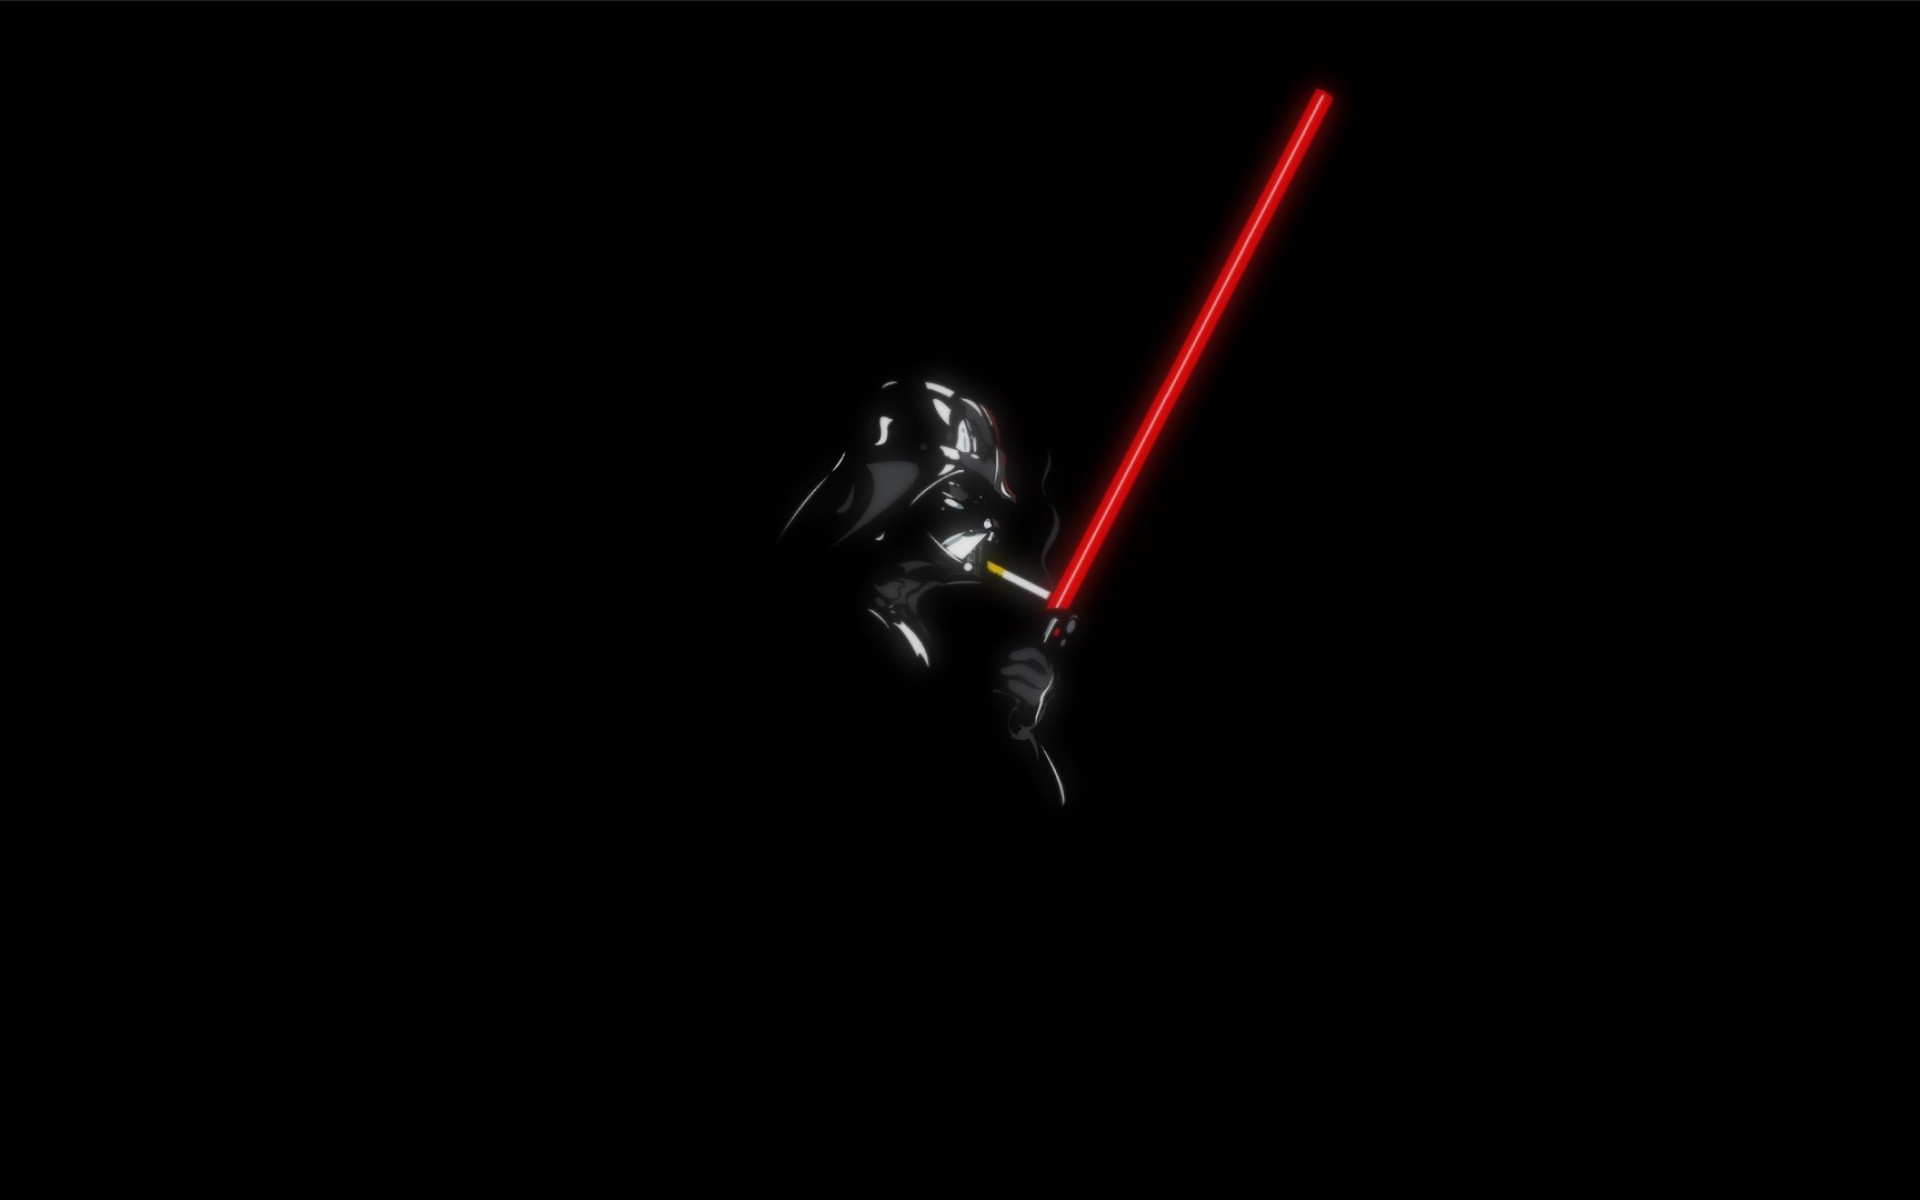 Darth Vader Wallpaper Iphone: Darth Vader Wallpapers, Pictures, Images